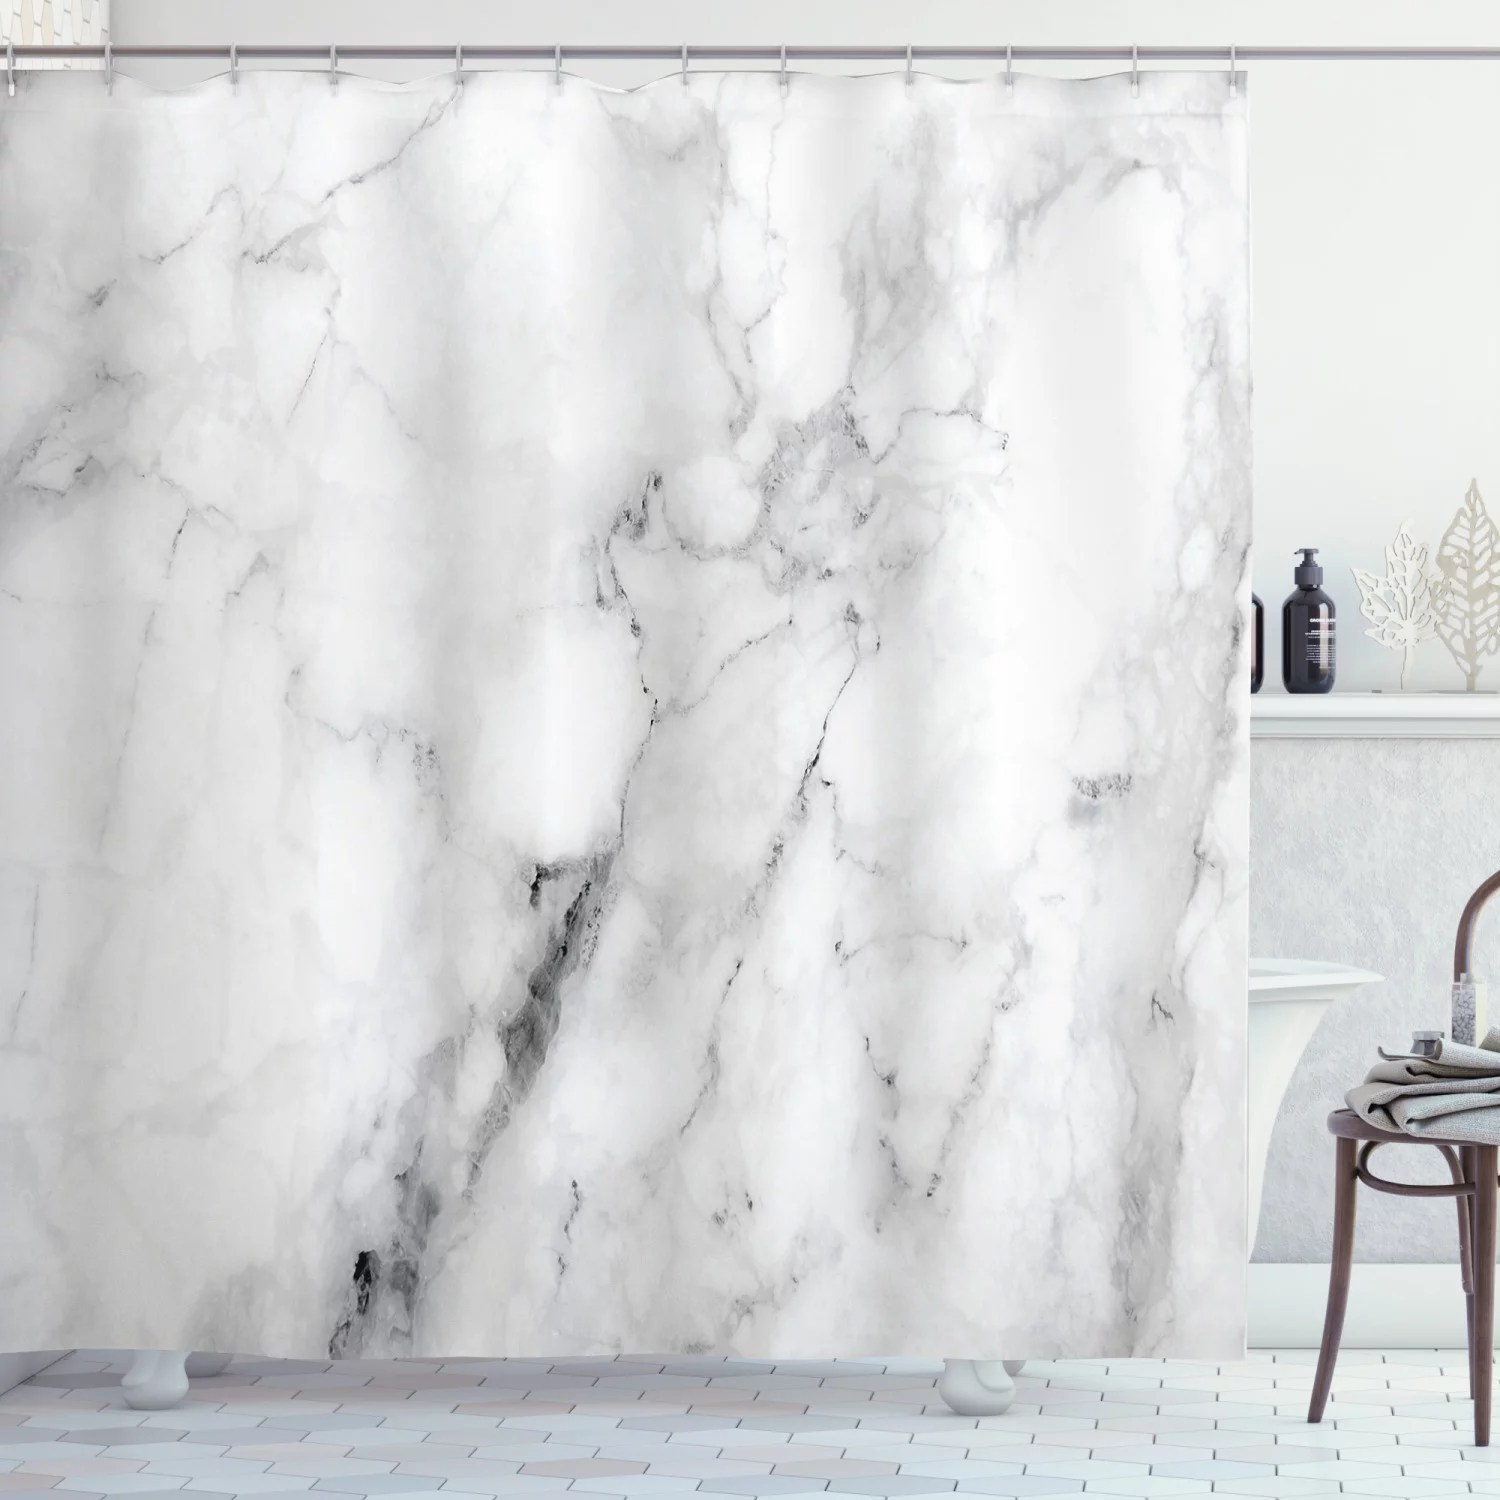 marble shower curtain marble surface pattern with cracked lines and hazy stripes artistic display fabric bathroom set with hooks grey dust white